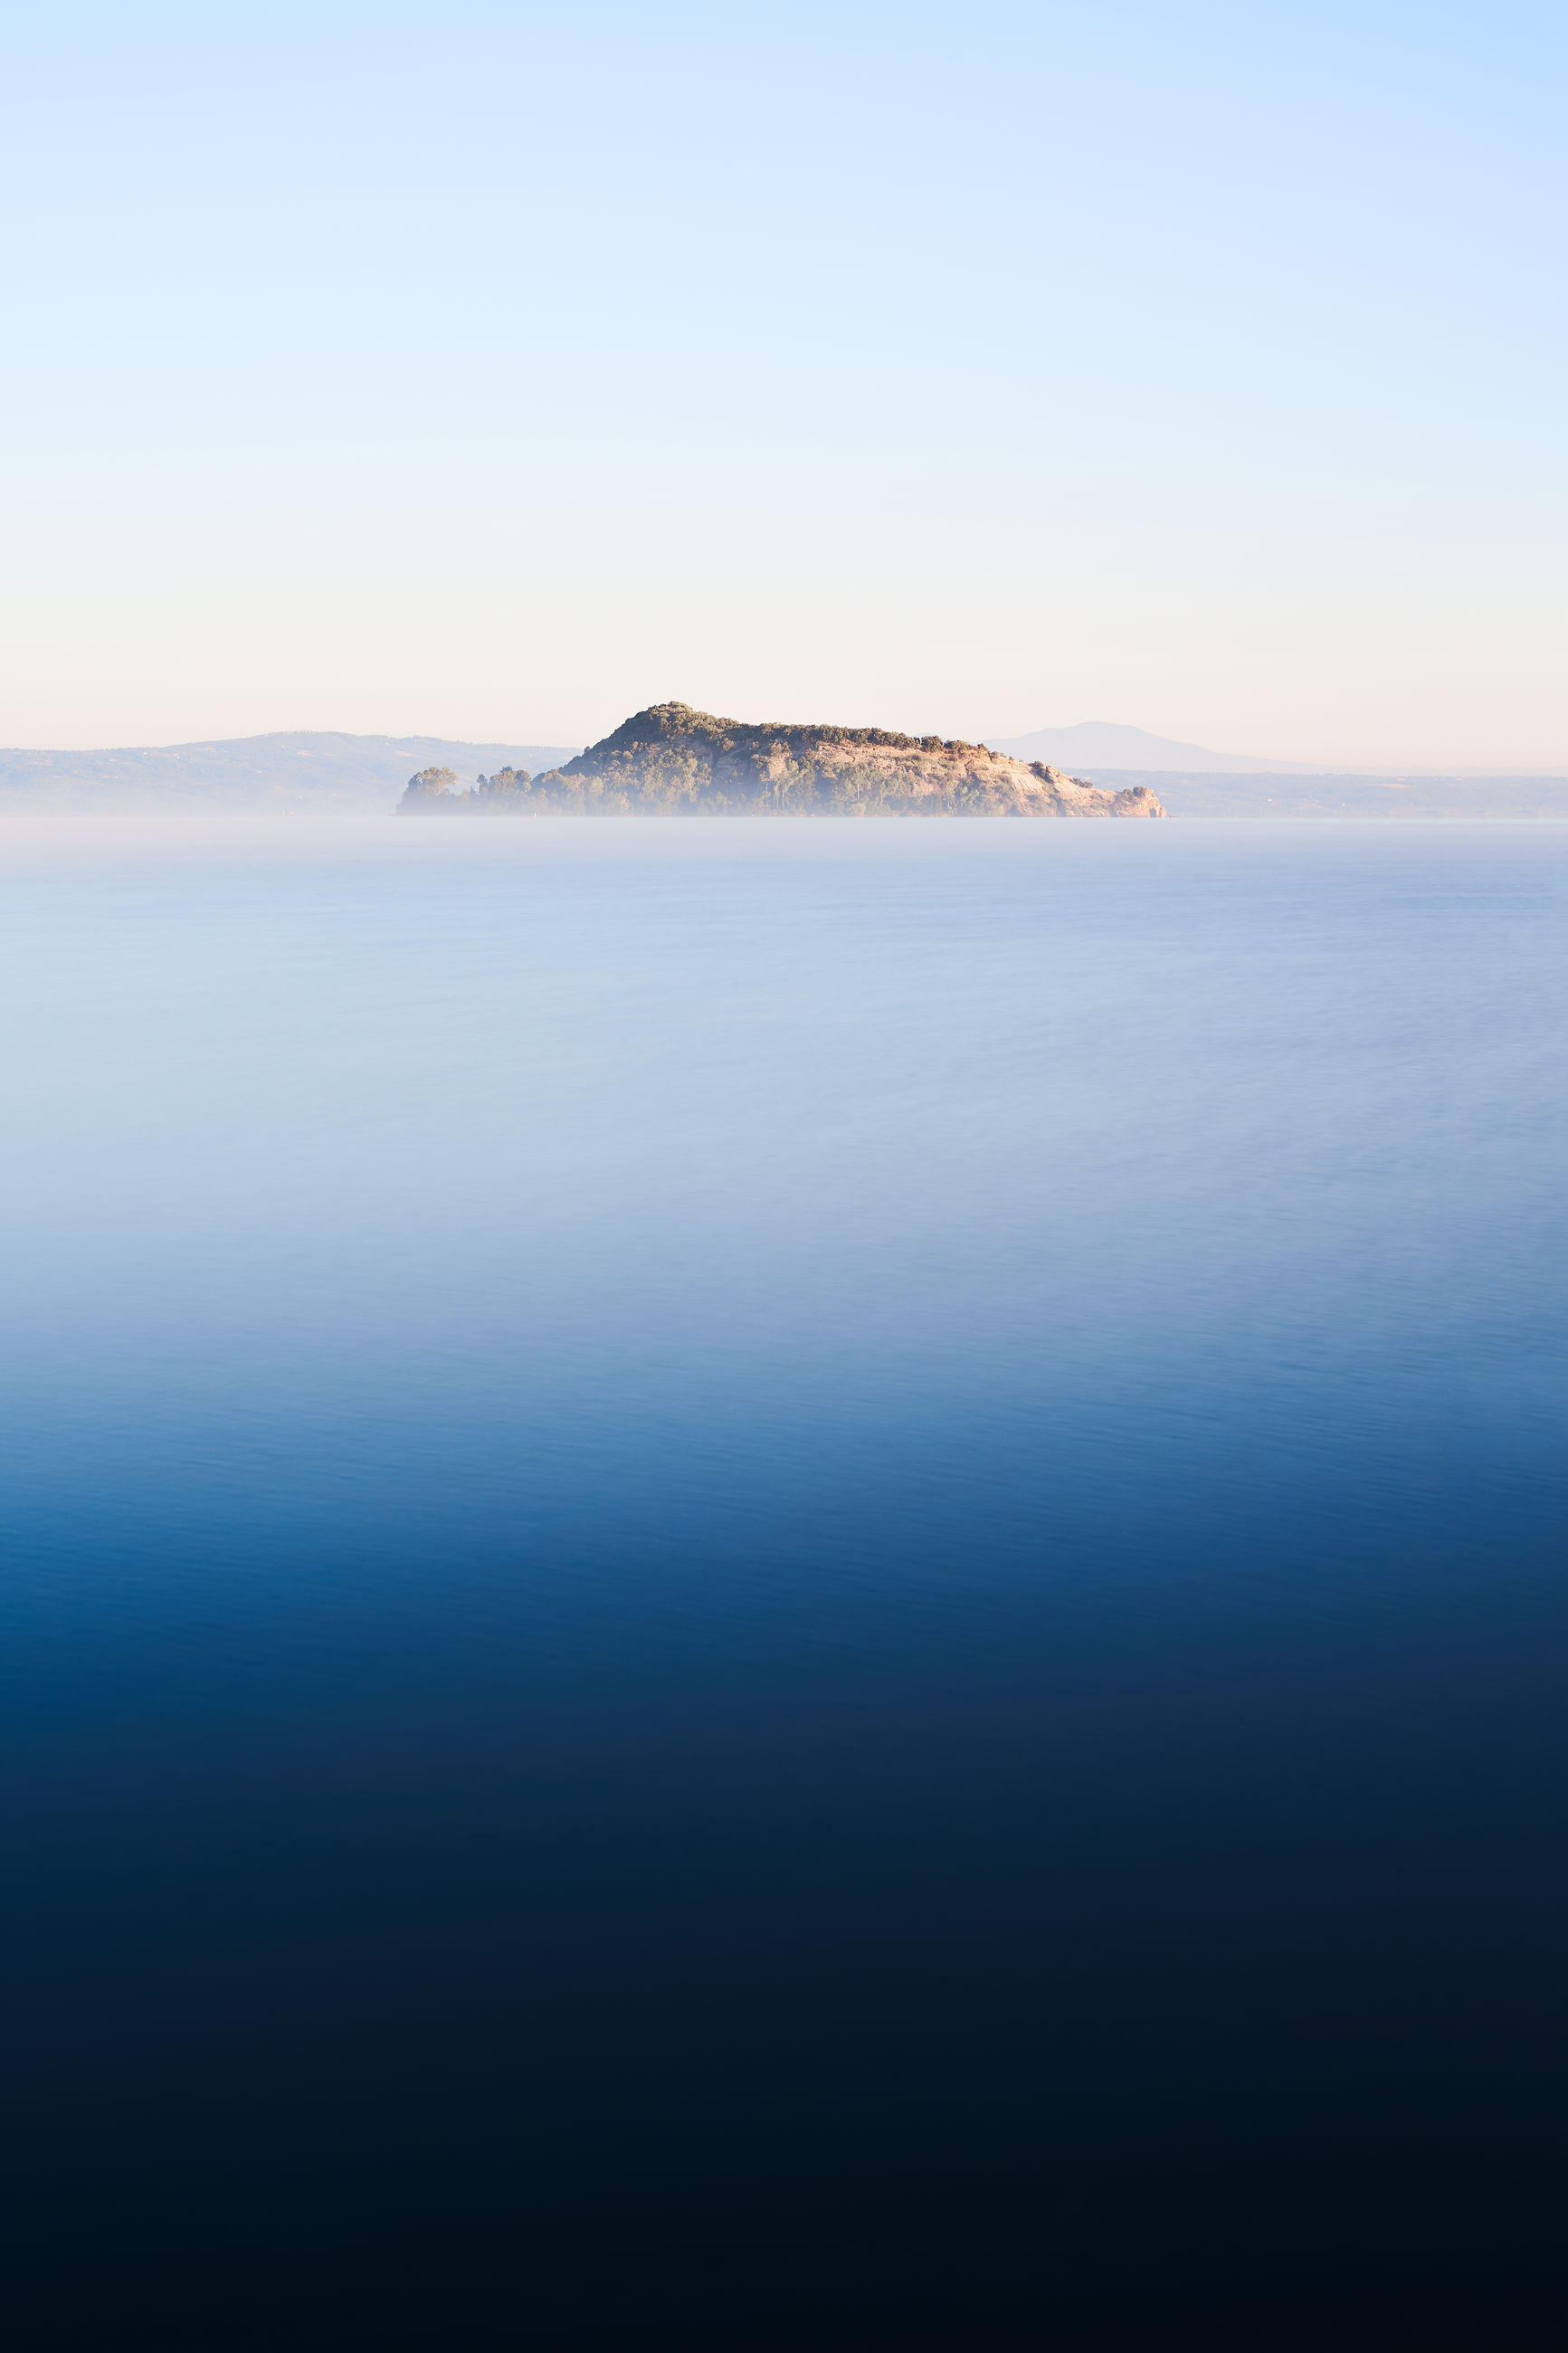 Martana island, an isolated solitary island in the bolsena lake, long exposure water and fog